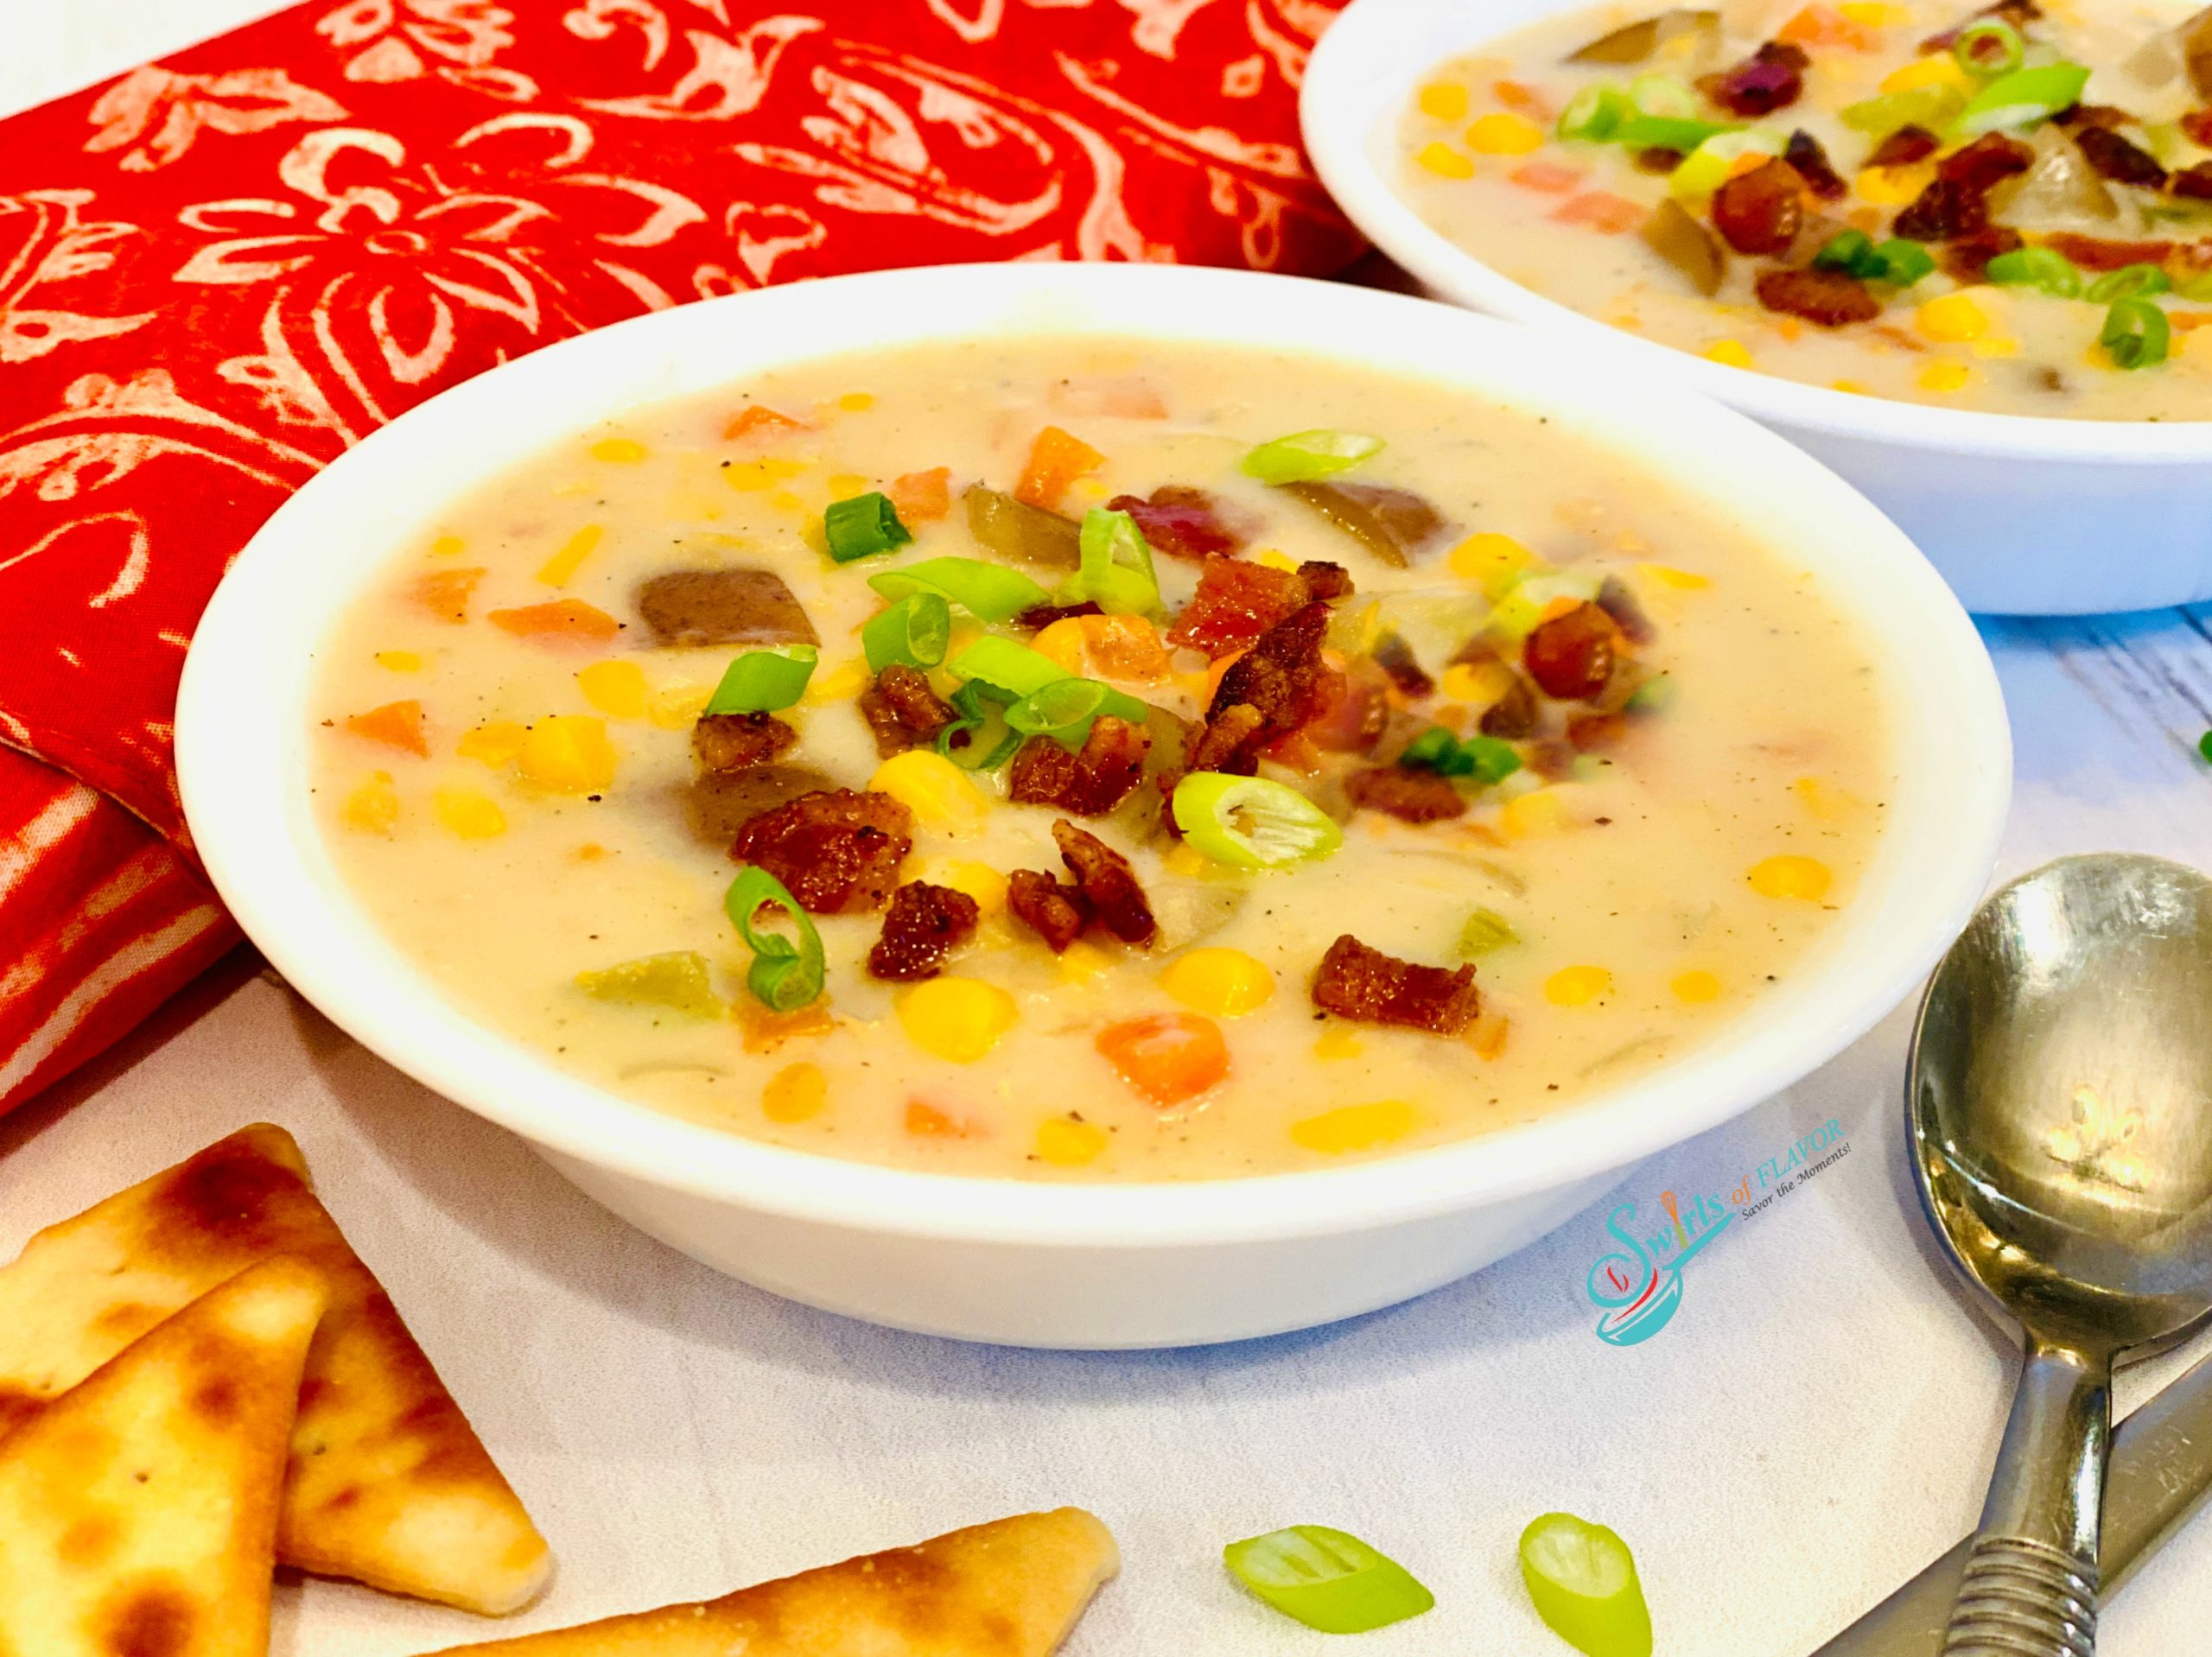 Creamy Corn Chowder with Bacon in a bowl